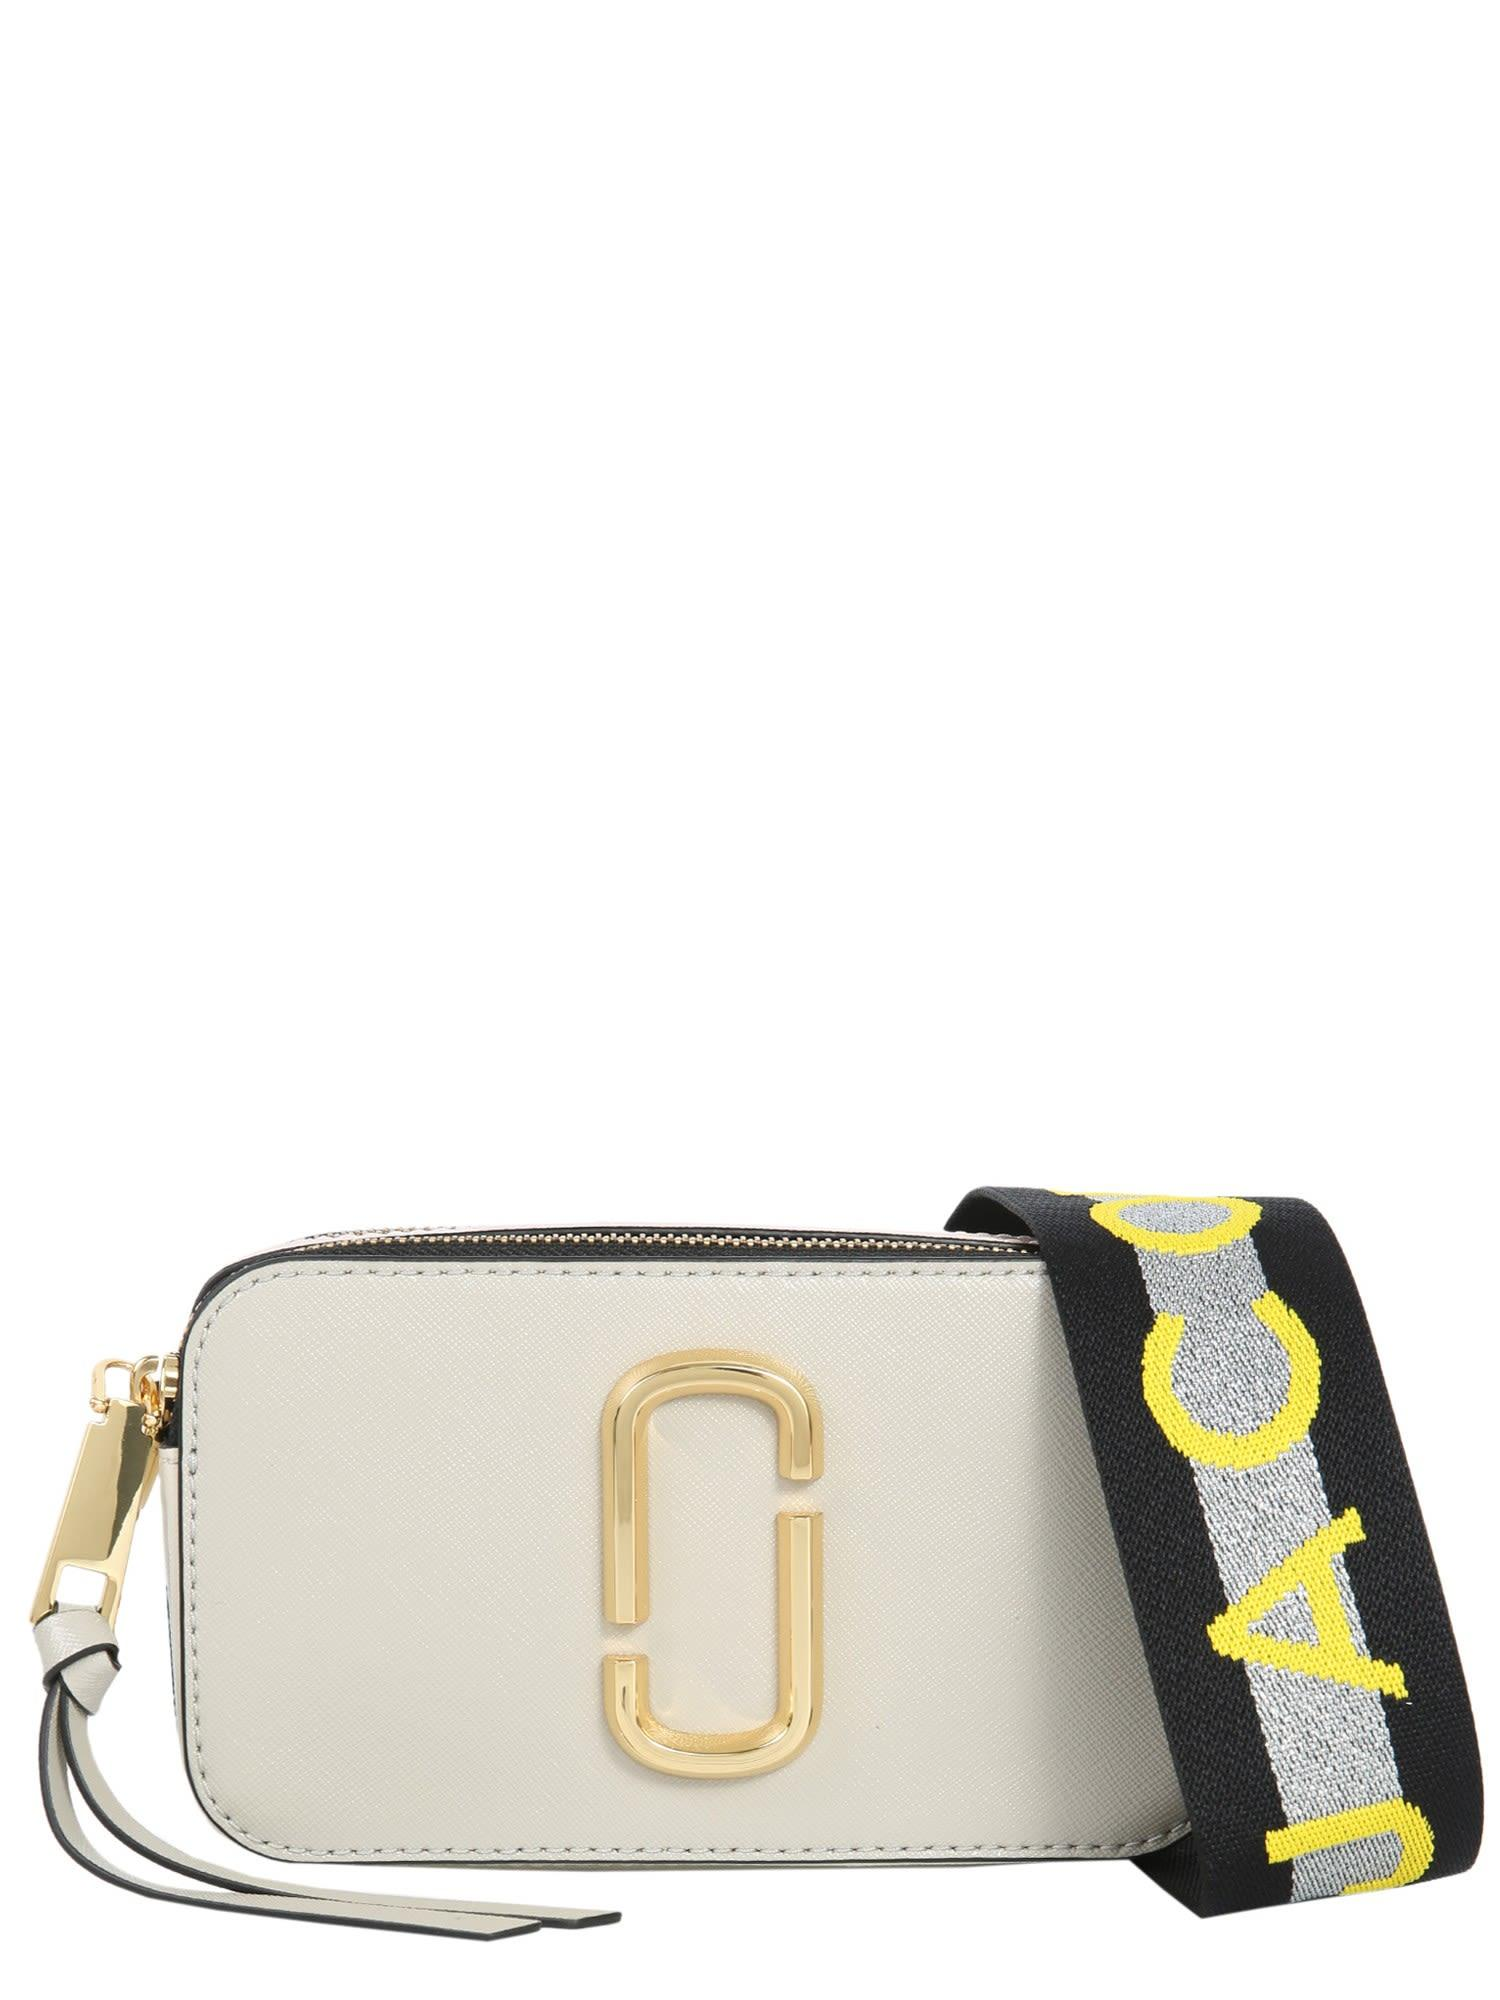 Marc Jacobs Small Snapshot Camera Bag In Grigio